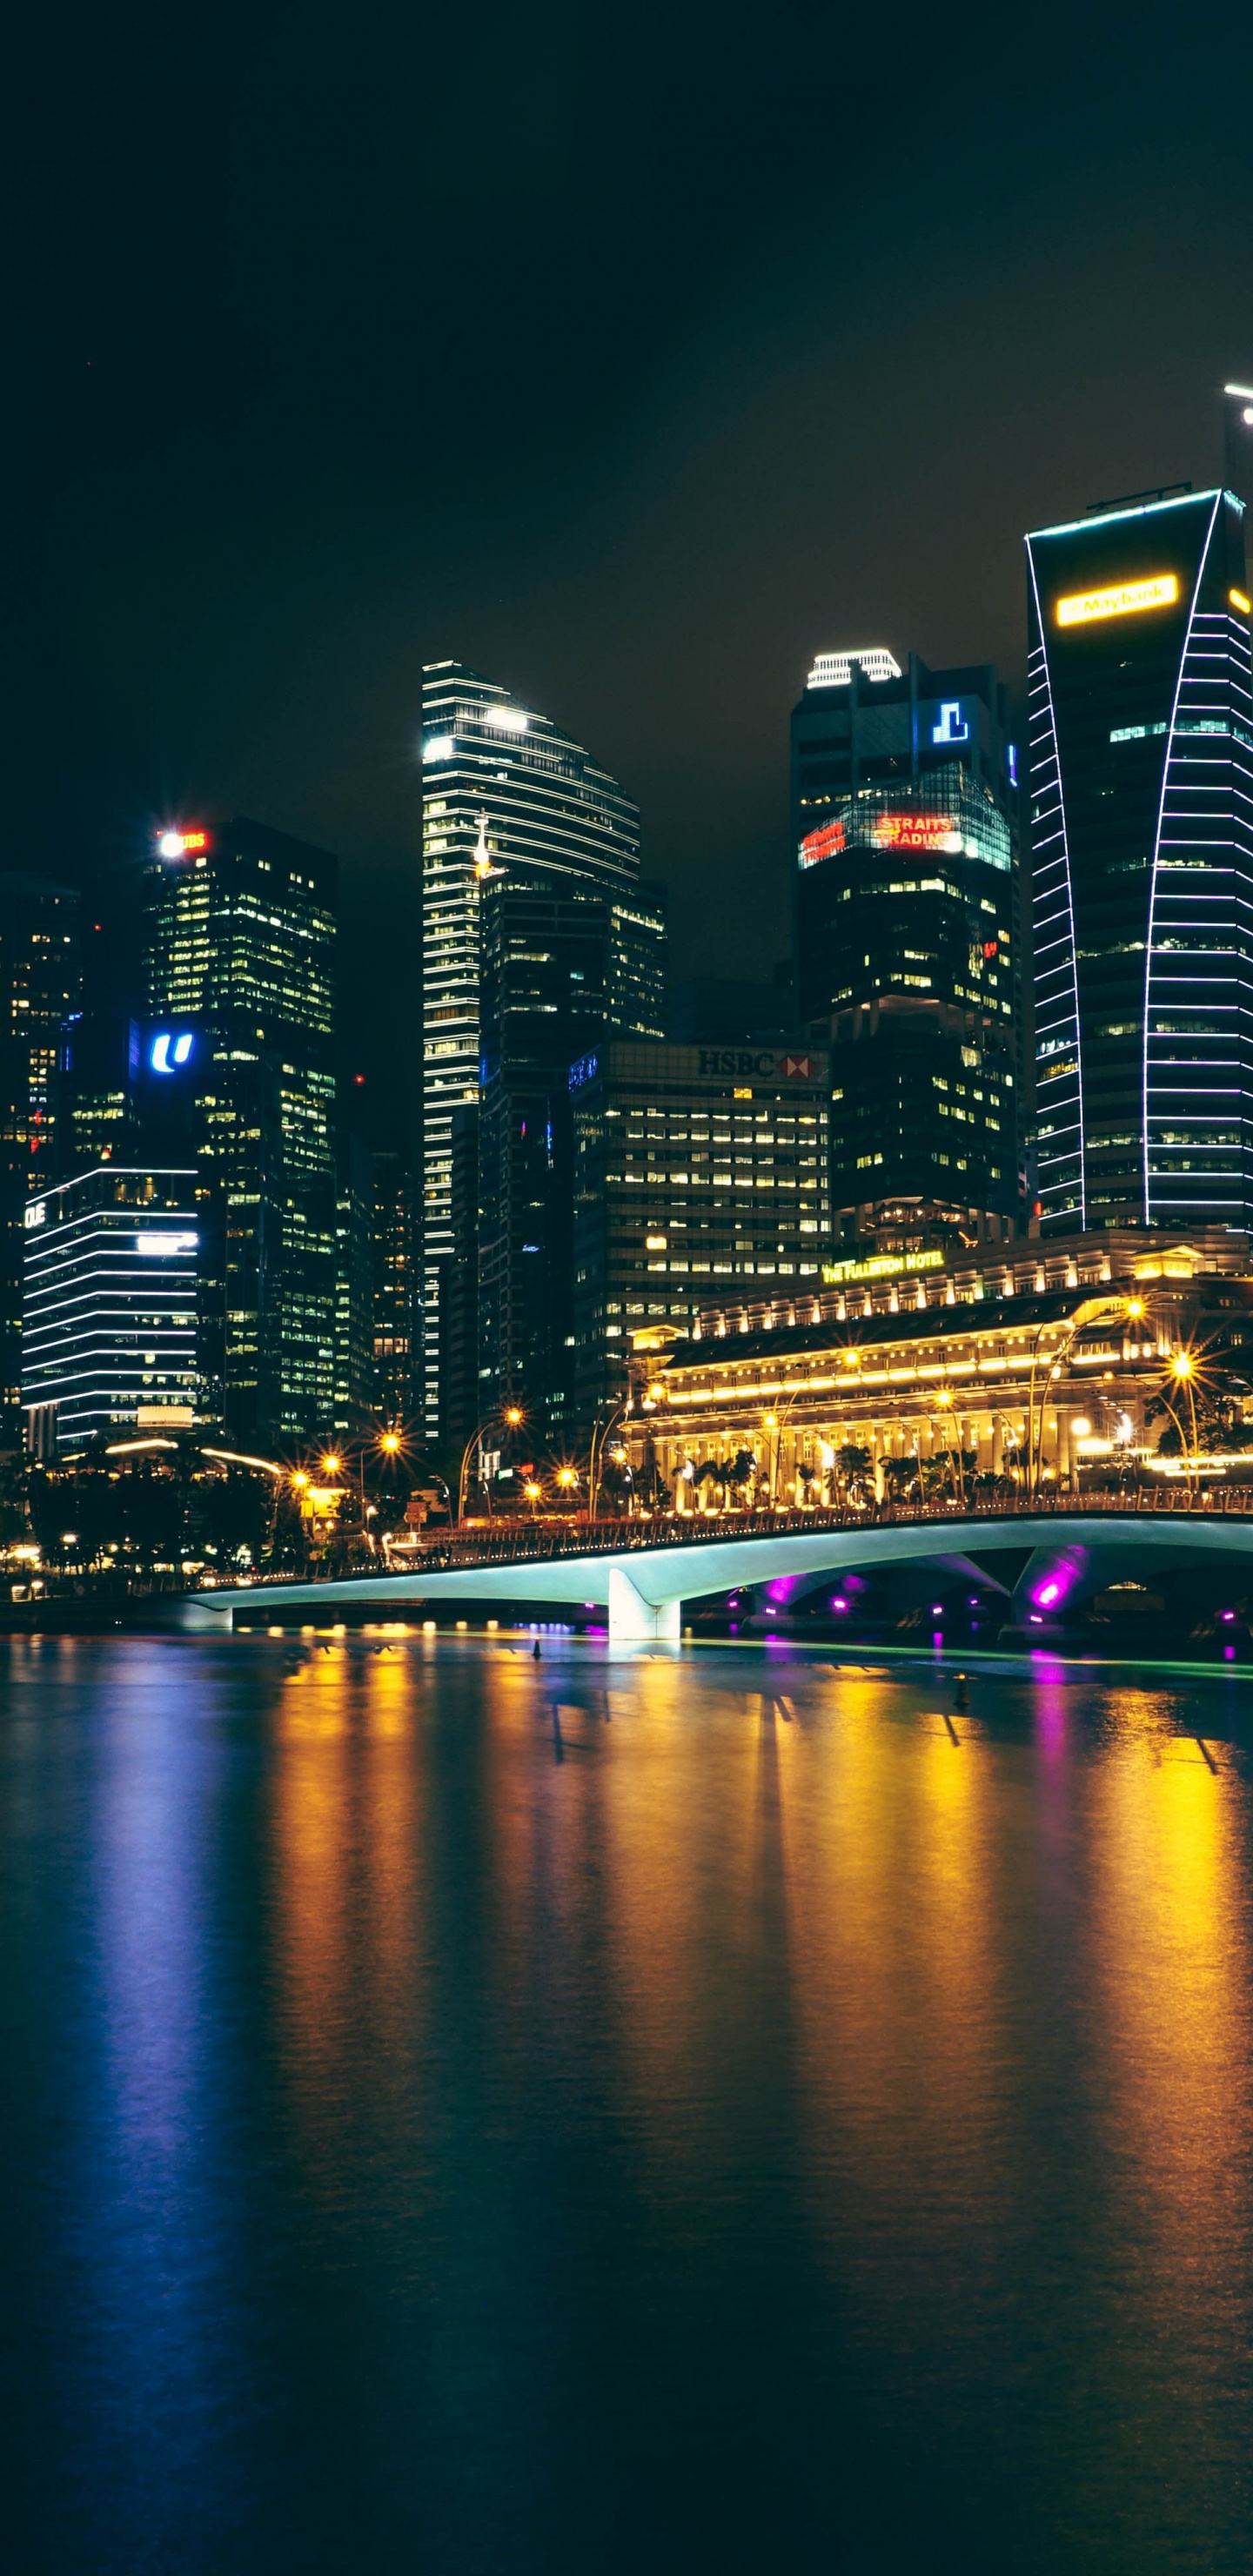 City Night Buildings Reflections Wallpaper City Night 15971 Hd Wallpaper Backgrounds Download